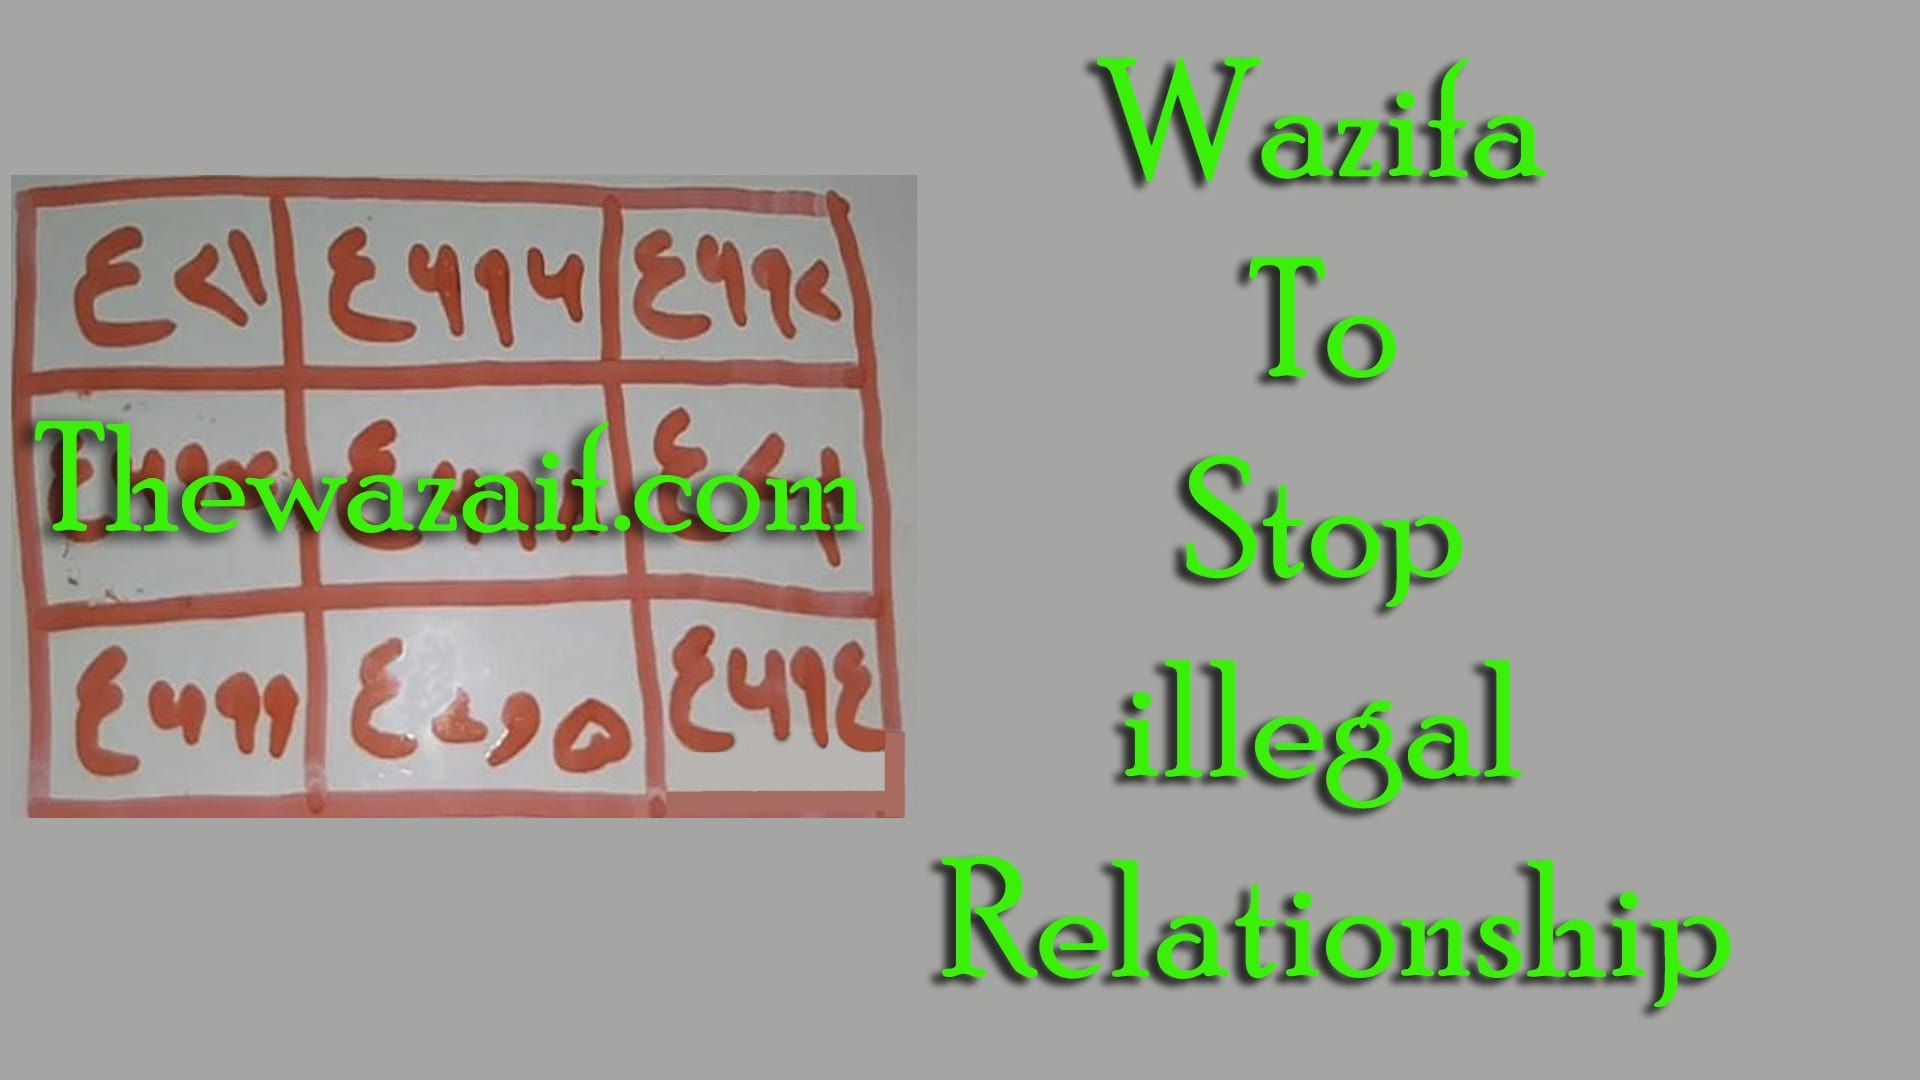 Powerful Wazifa To Stop Illegal Relationship